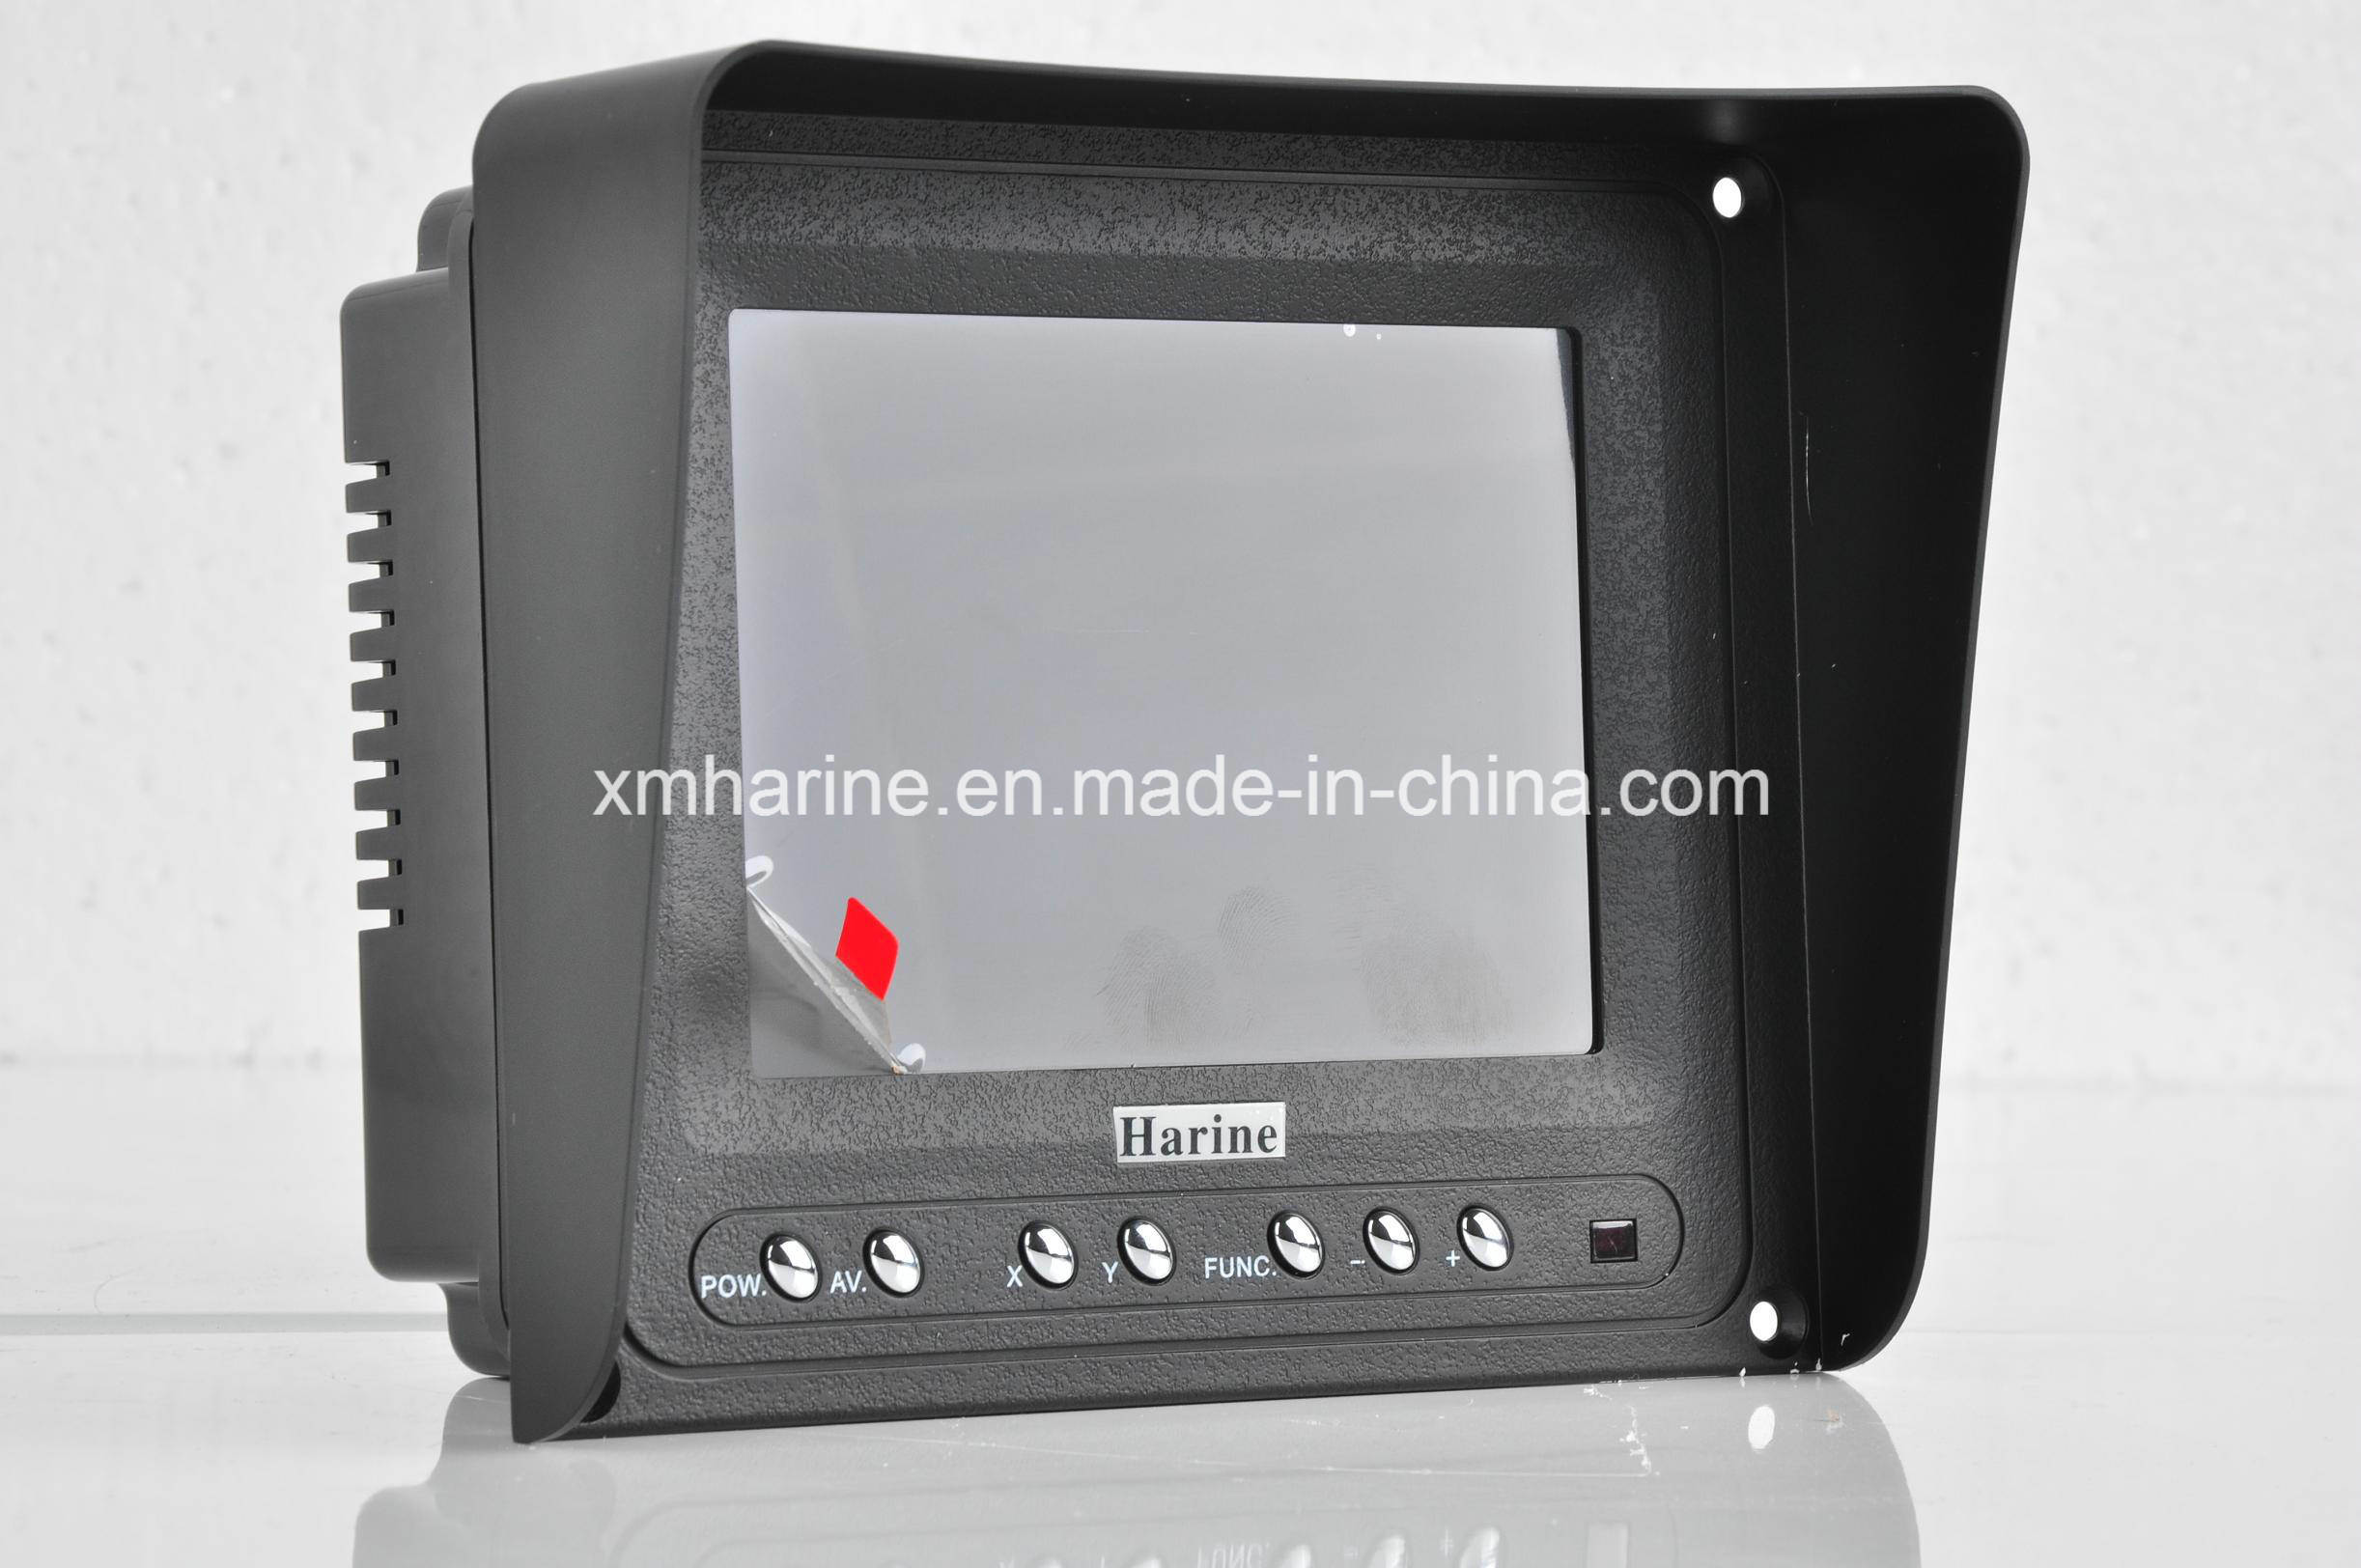 5.6 Inch Bus/Trailer/Truck Car Monitor Rear View System